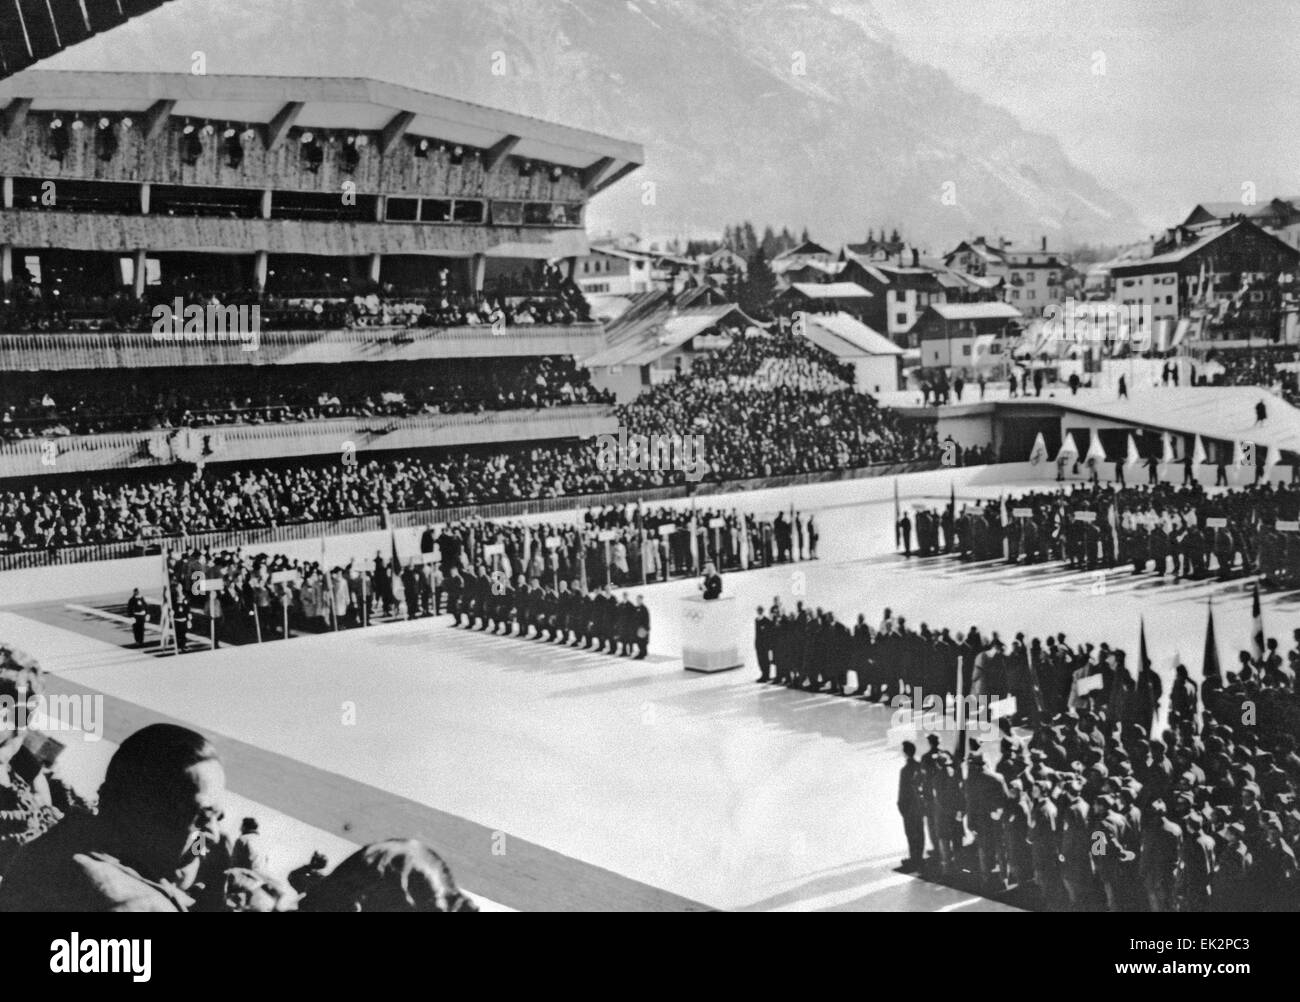 Italy. Opening of the VII Olympic Games in Cortina d'Ampezzo. - Stock Image